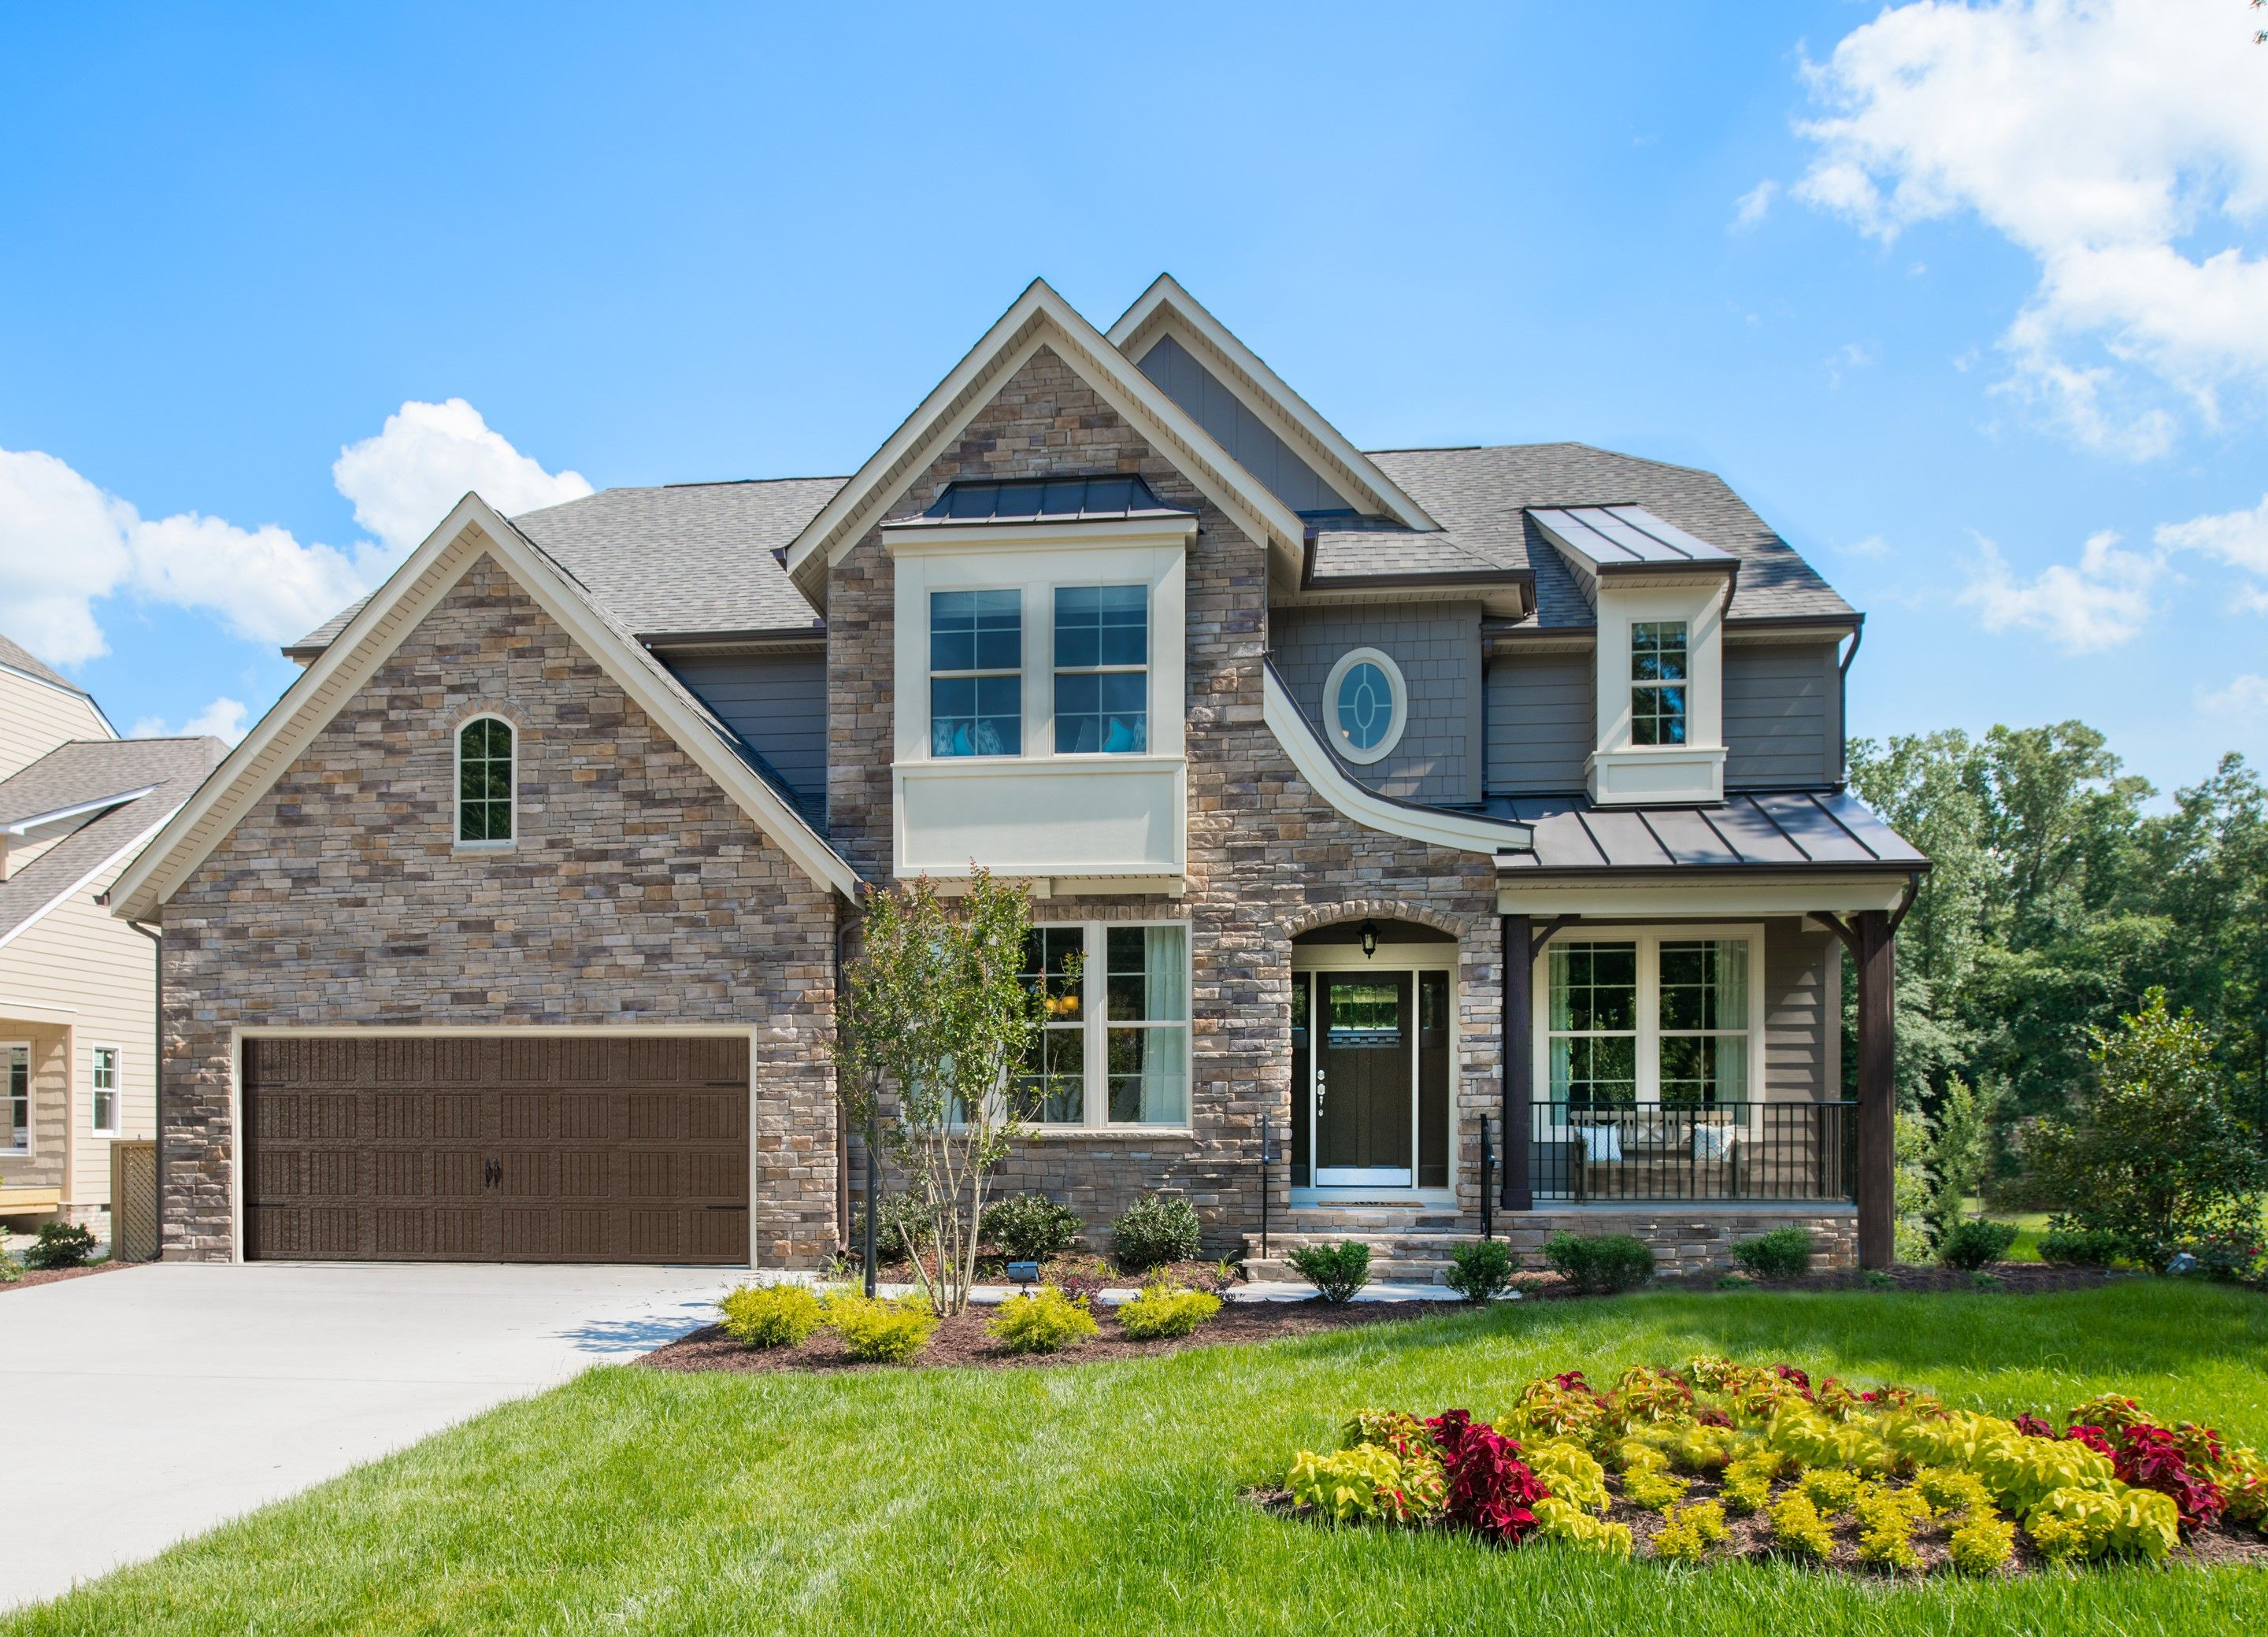 Hillcrest plan midlothian virginia 23112 hillcrest for Home buliders